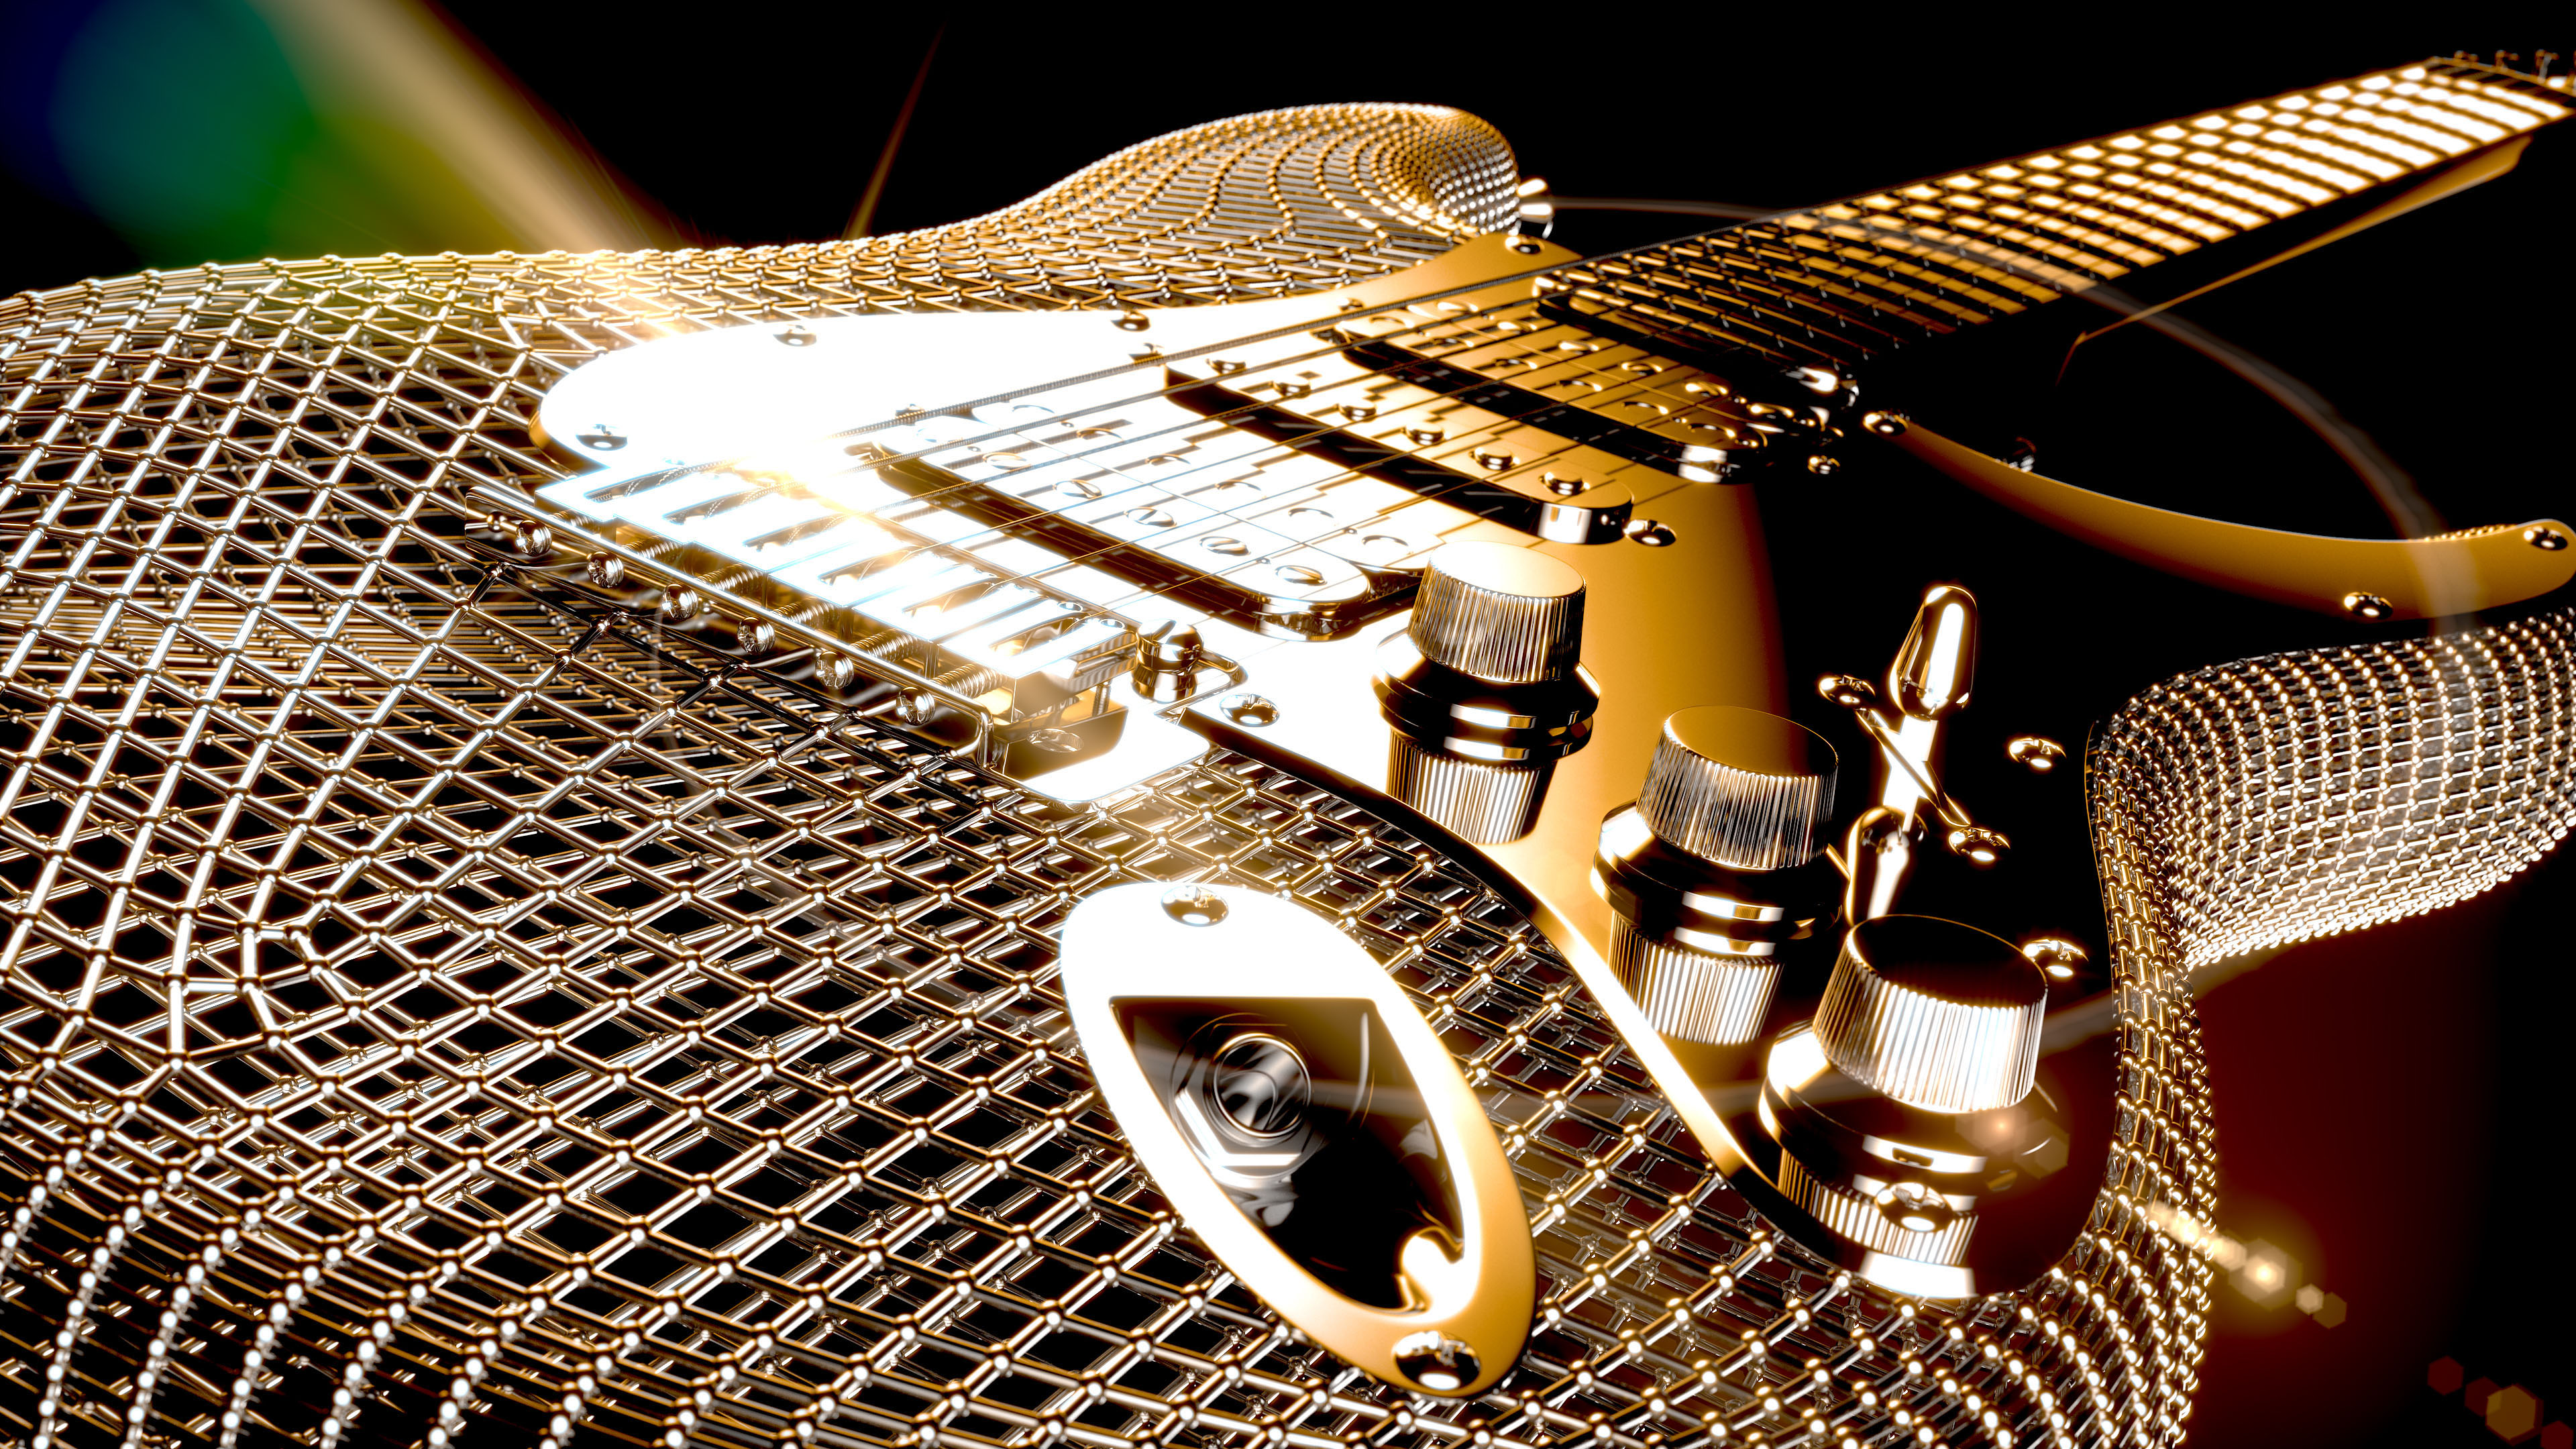 Electric guitar concept rendering with mesh body gold frame and lens effects